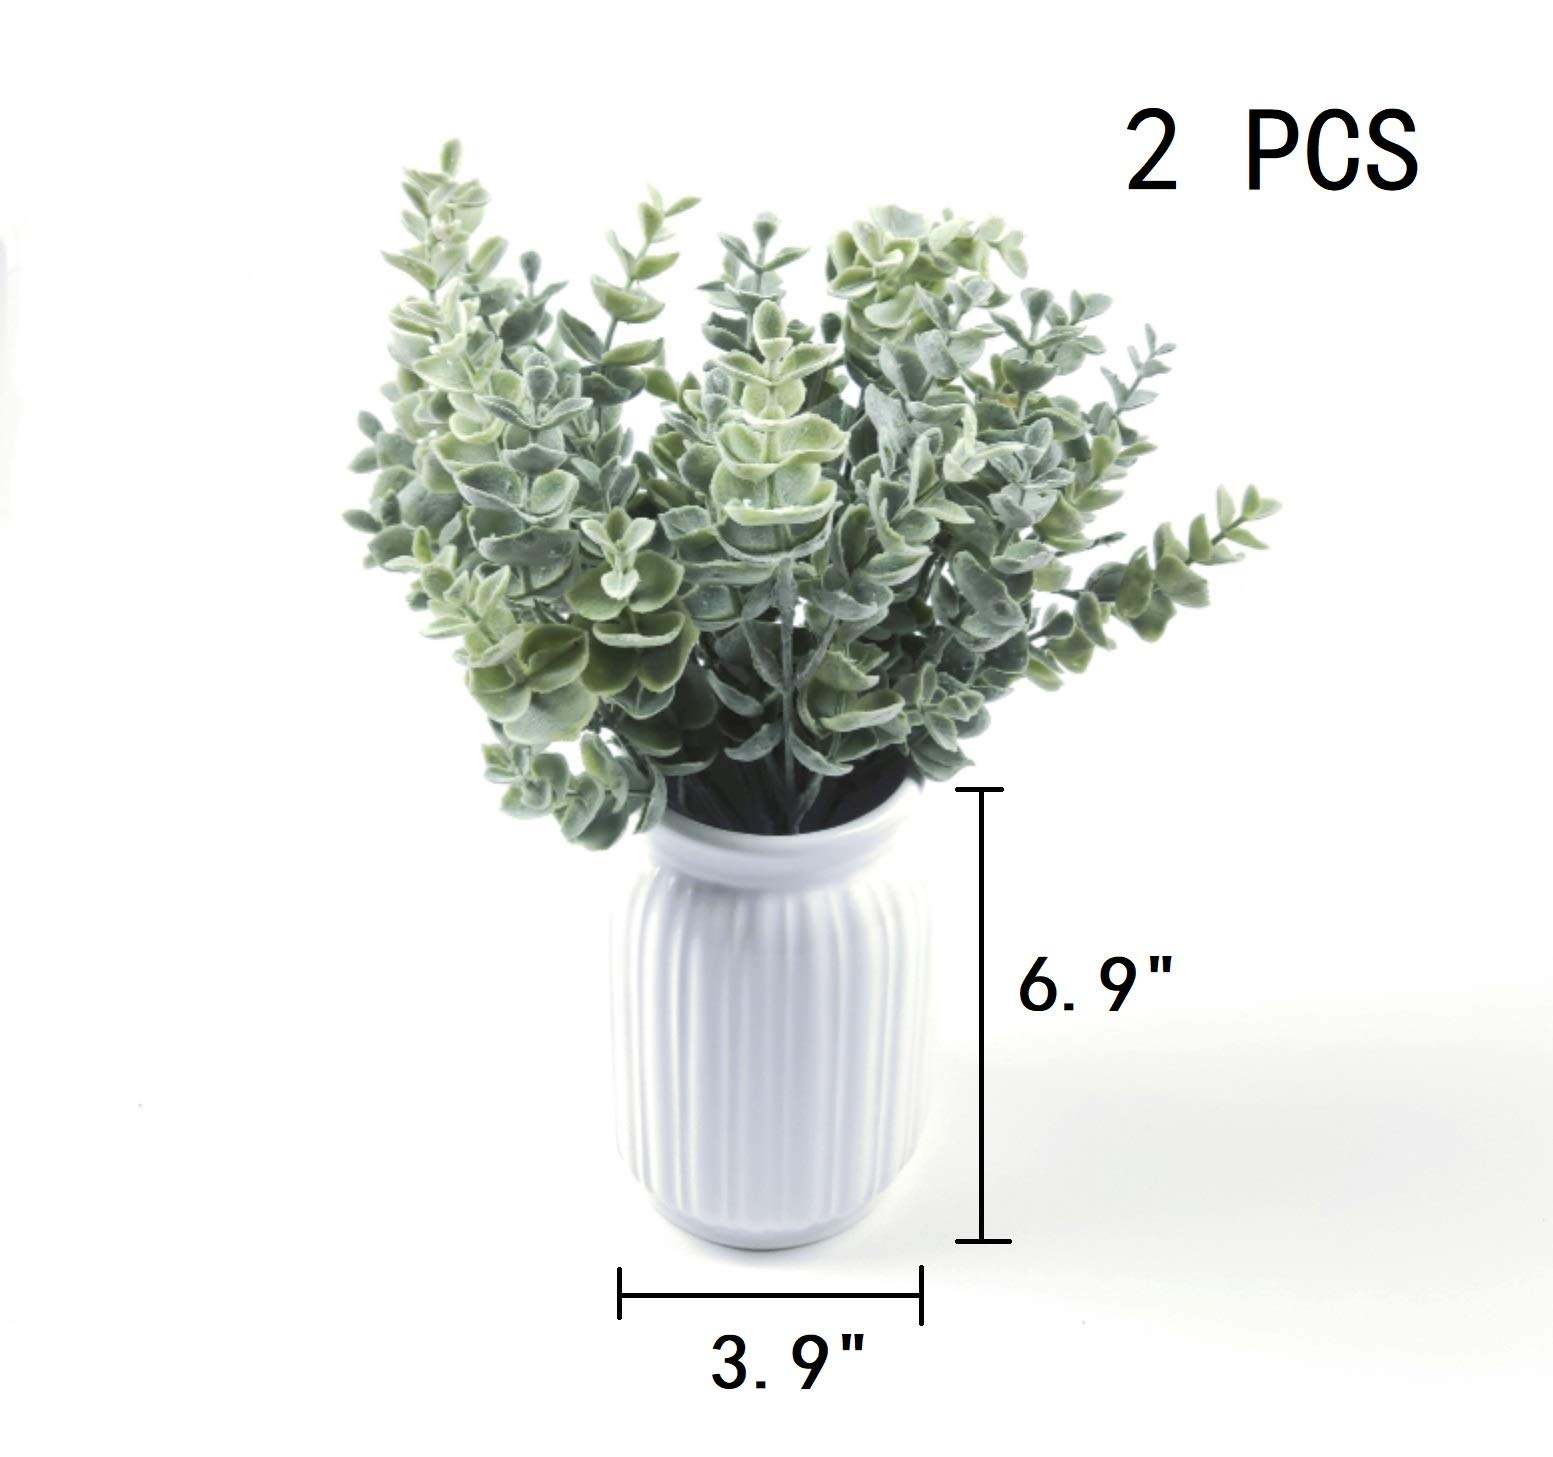 Nolast-Artificial-Greenery-Plastic-Plants-Faux-Shrubs-Eucalyptus-Fake-Bushes-Flowers-Indoor-Outdoor-Garden-Home-Office-Decor-3pcs